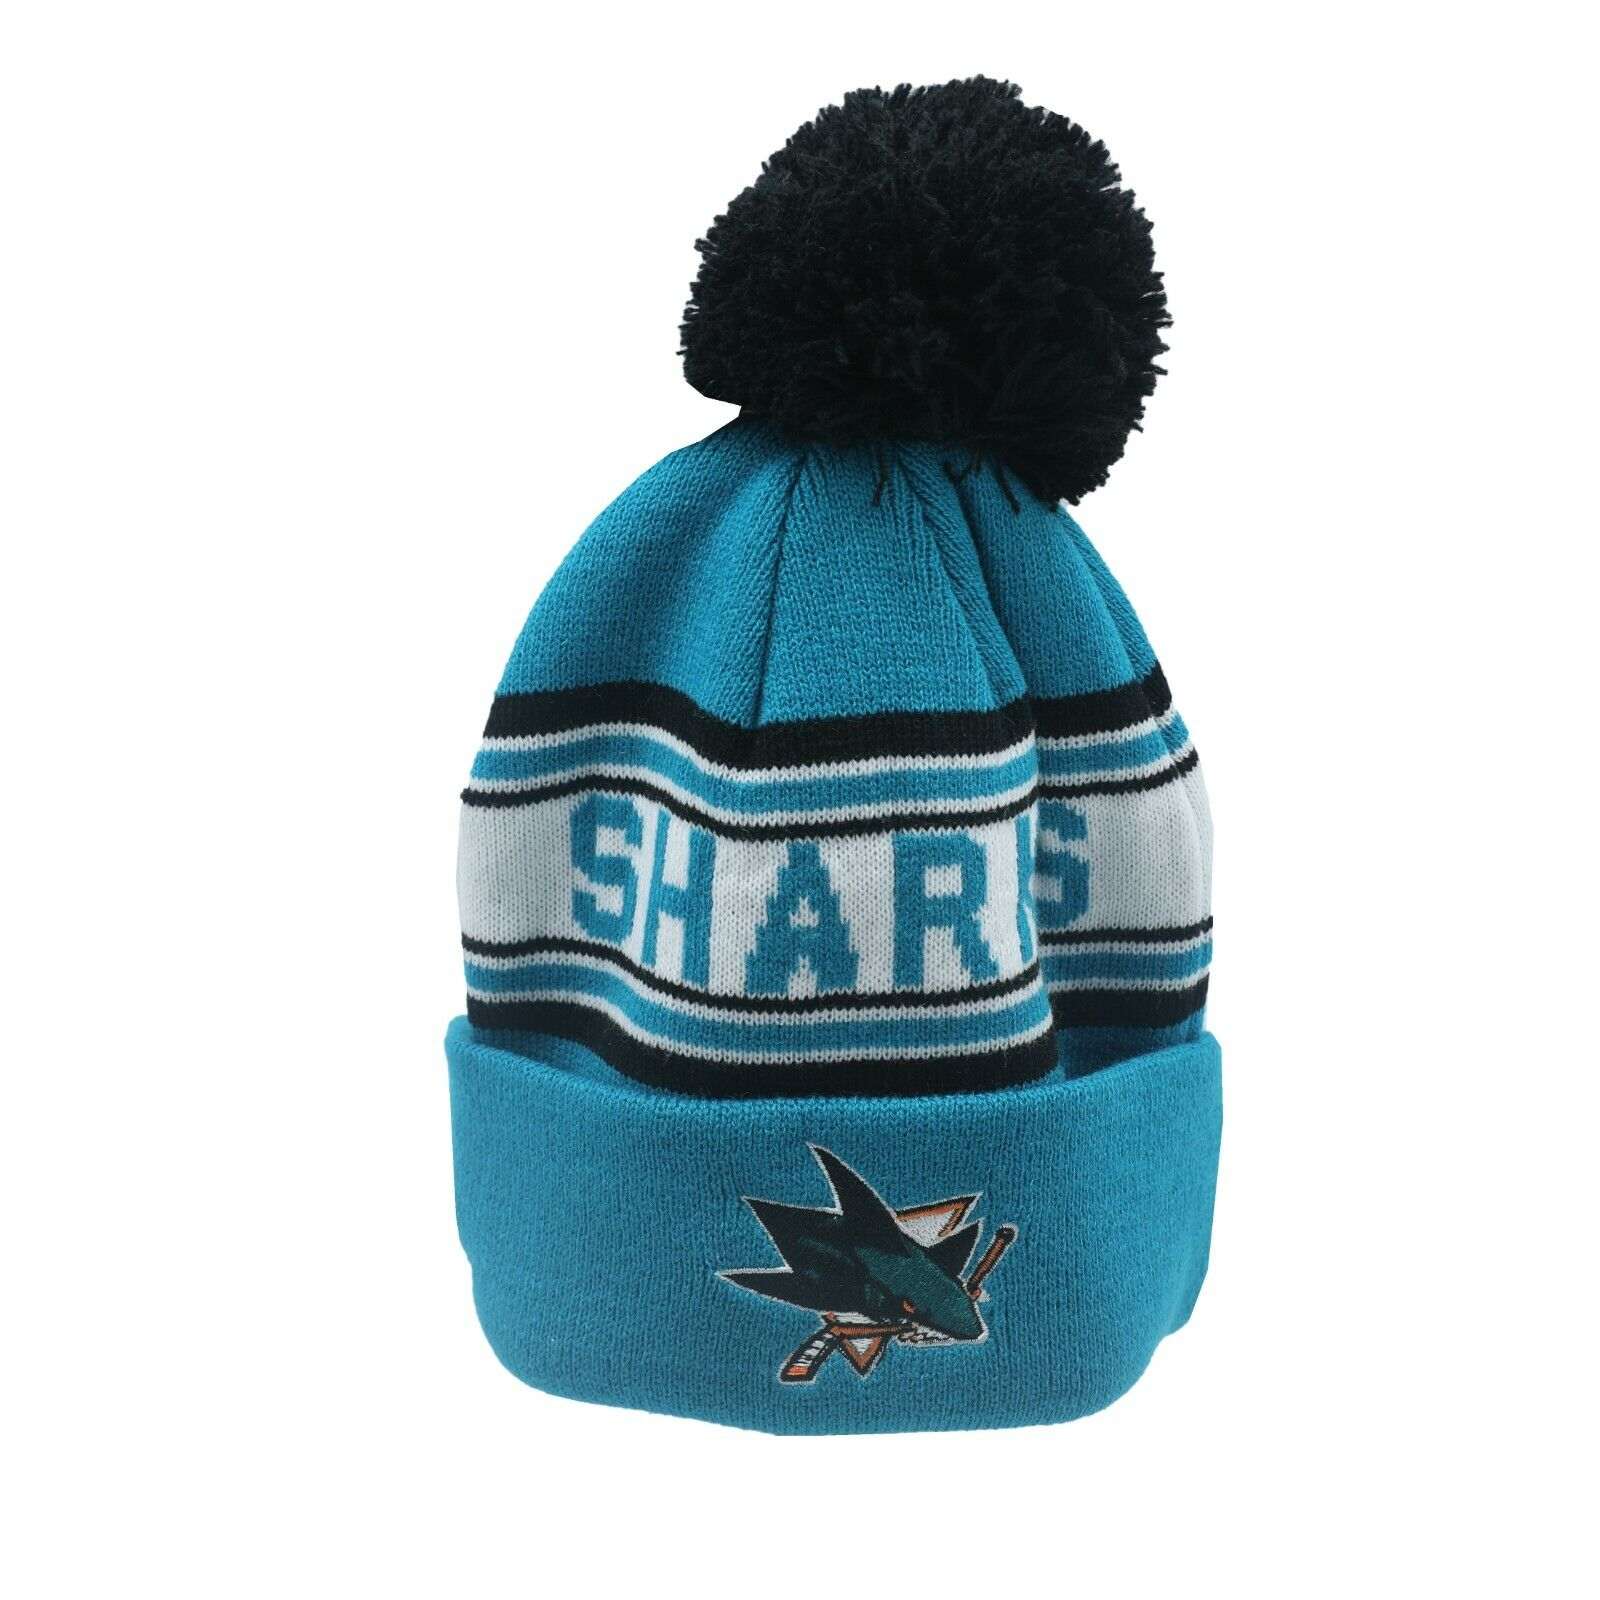 18e37e9c4ba San Jose Sharks NHL Reebok Youth Boys (8-20) Cuffed Pom Knit Winter Beanie  Hat